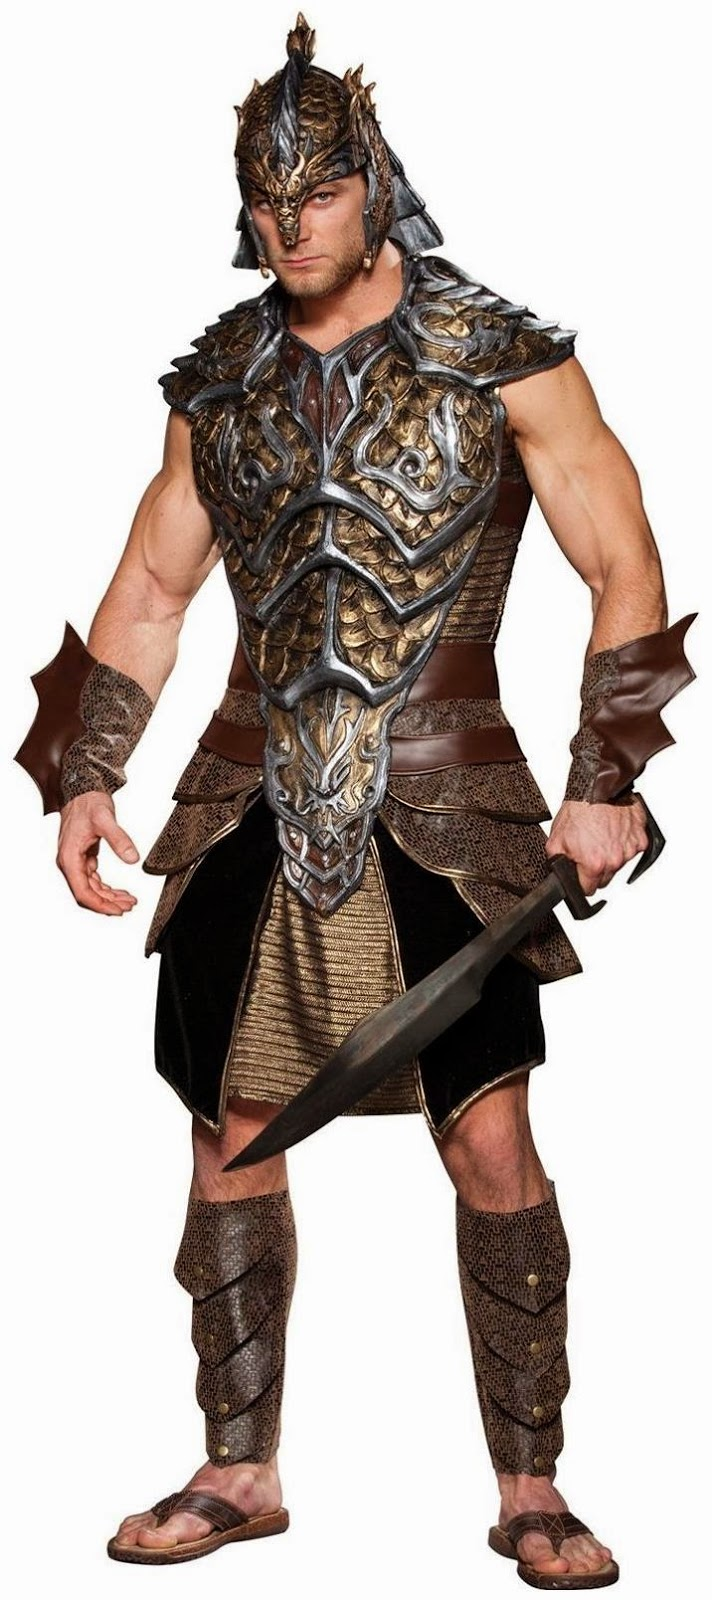 http://www.partybell.com/p-29285-dragon-lord-adult-costume.aspx?utm_source=Blog&utm_medium=Social&utm_campaign=dragon-theme-party-ideas